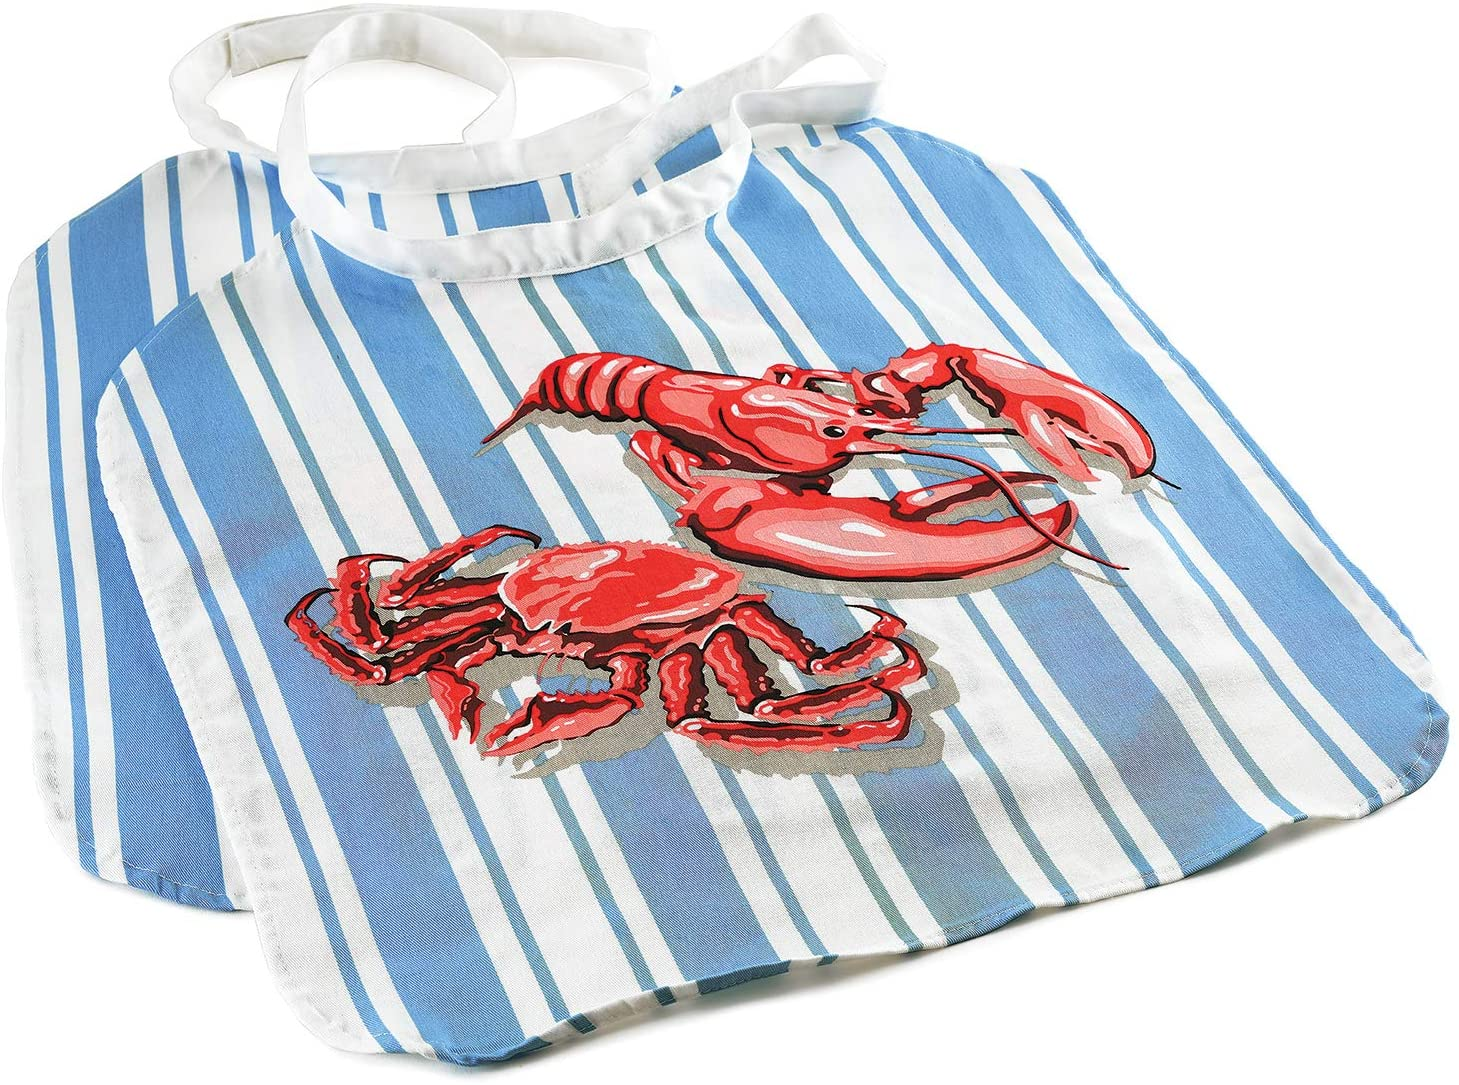 Norpro Seafood Bib, One-Size, Blue/Red